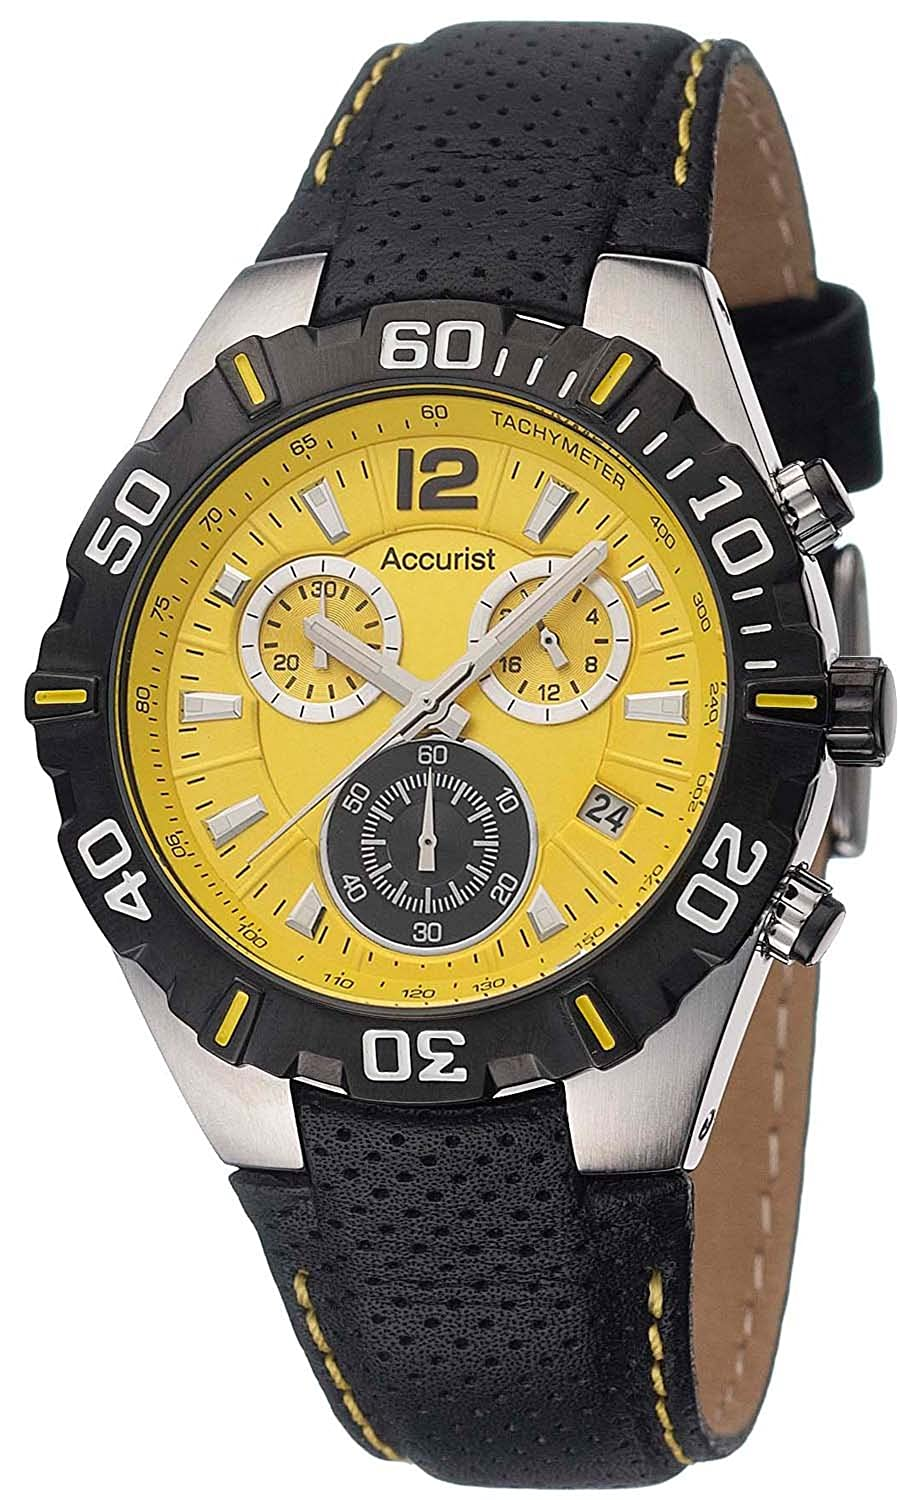 watch dive dial yellow forum viewtopic orange possibility o connection the watches or